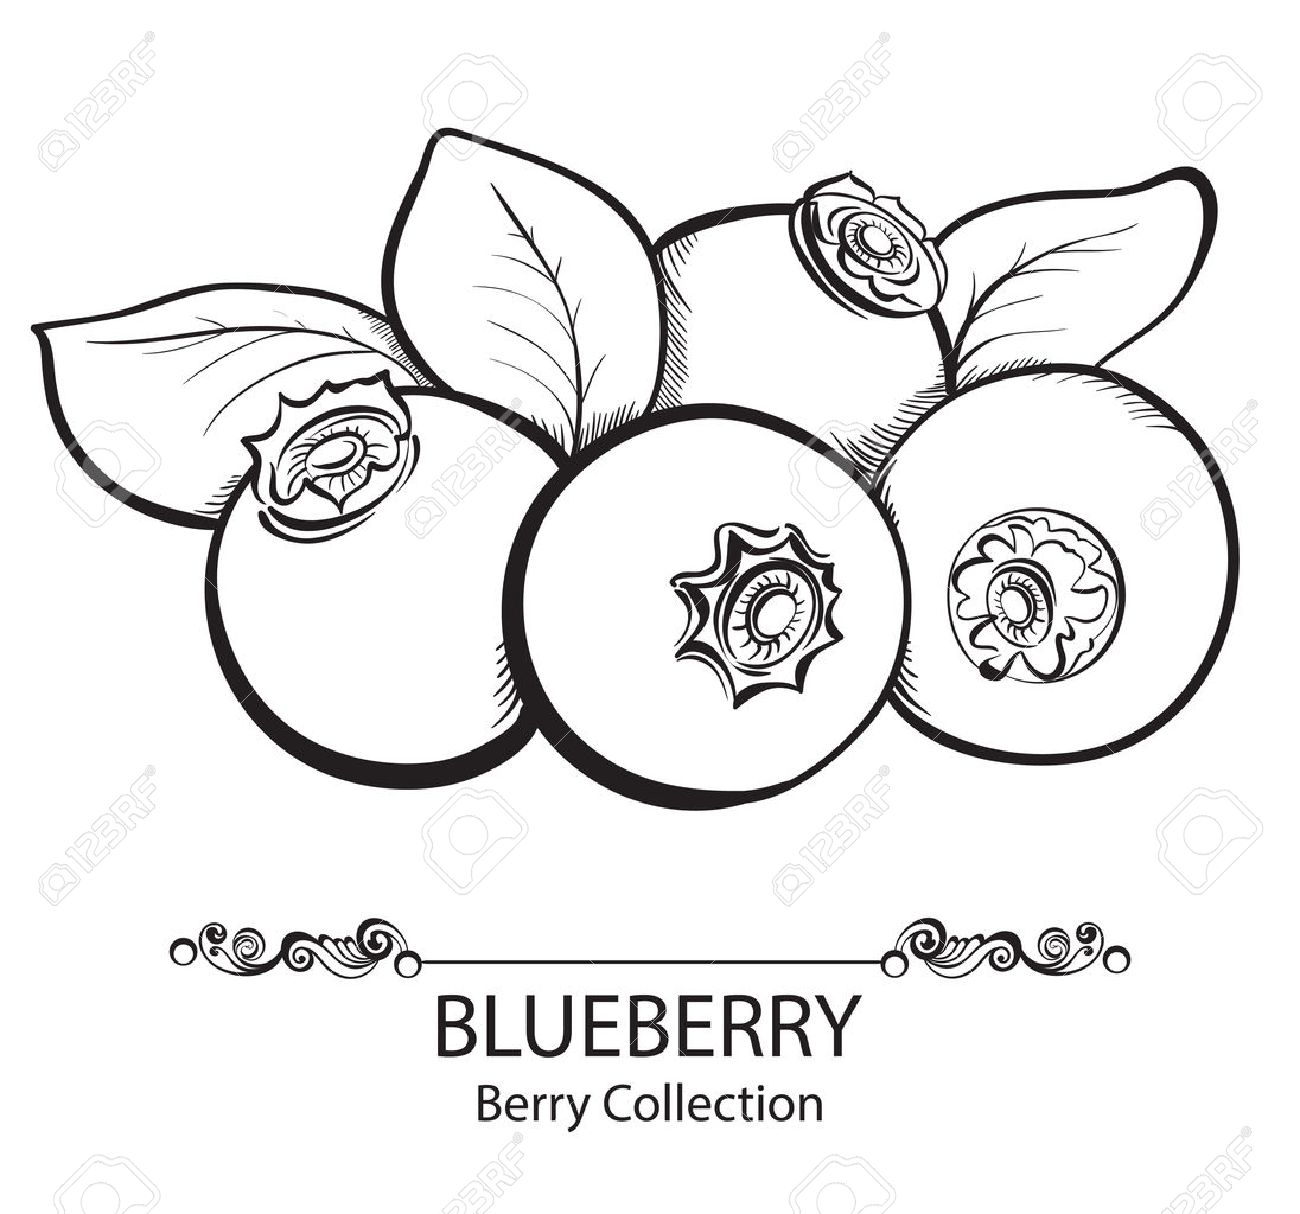 Blueberries clipart black and white.  collection of blueberry